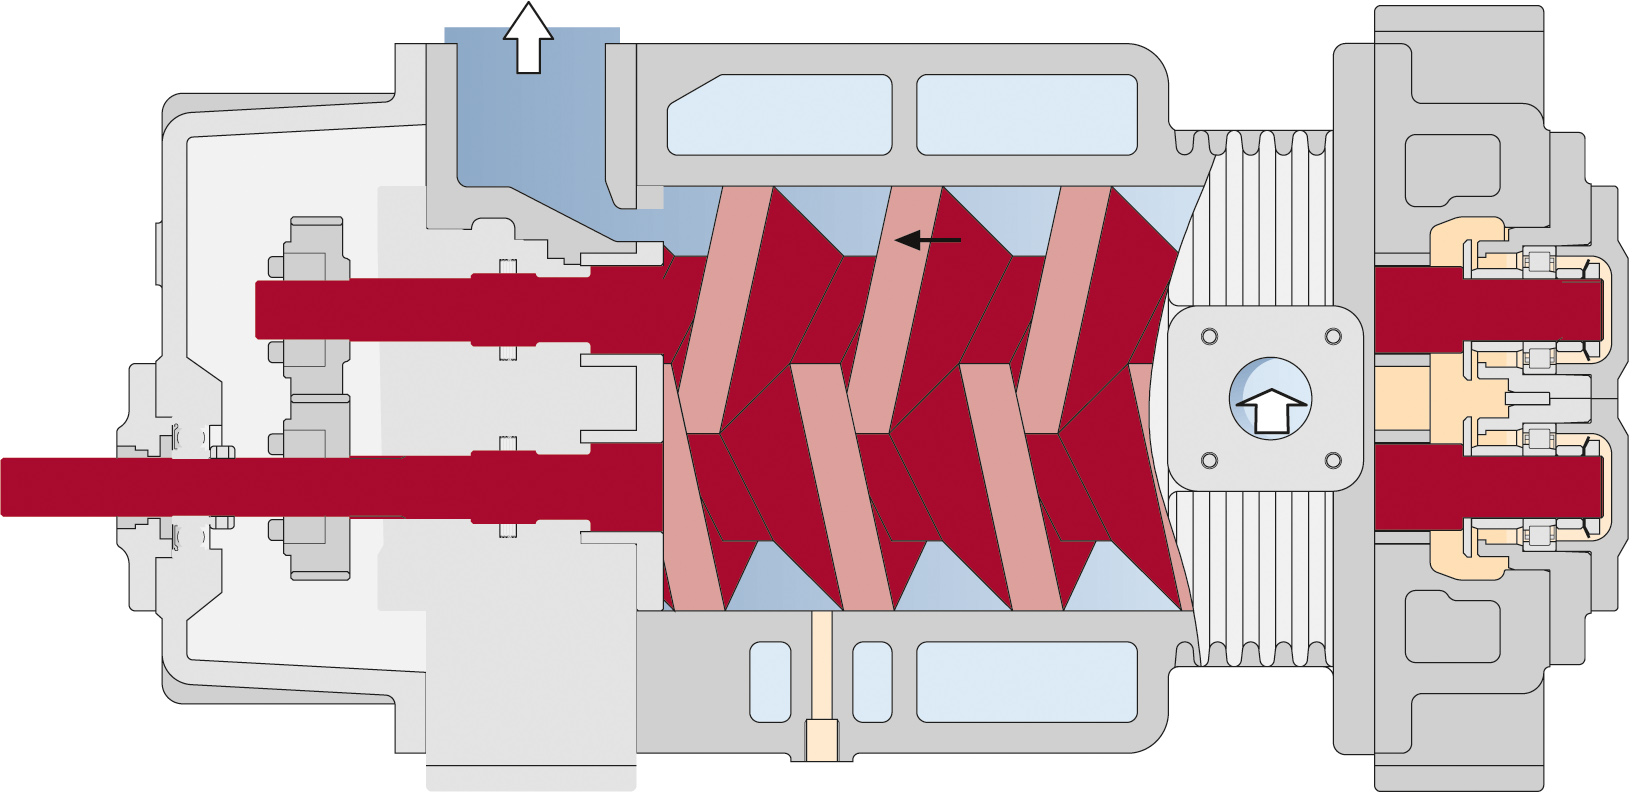 Screw vacuum pump operating principles cut section model